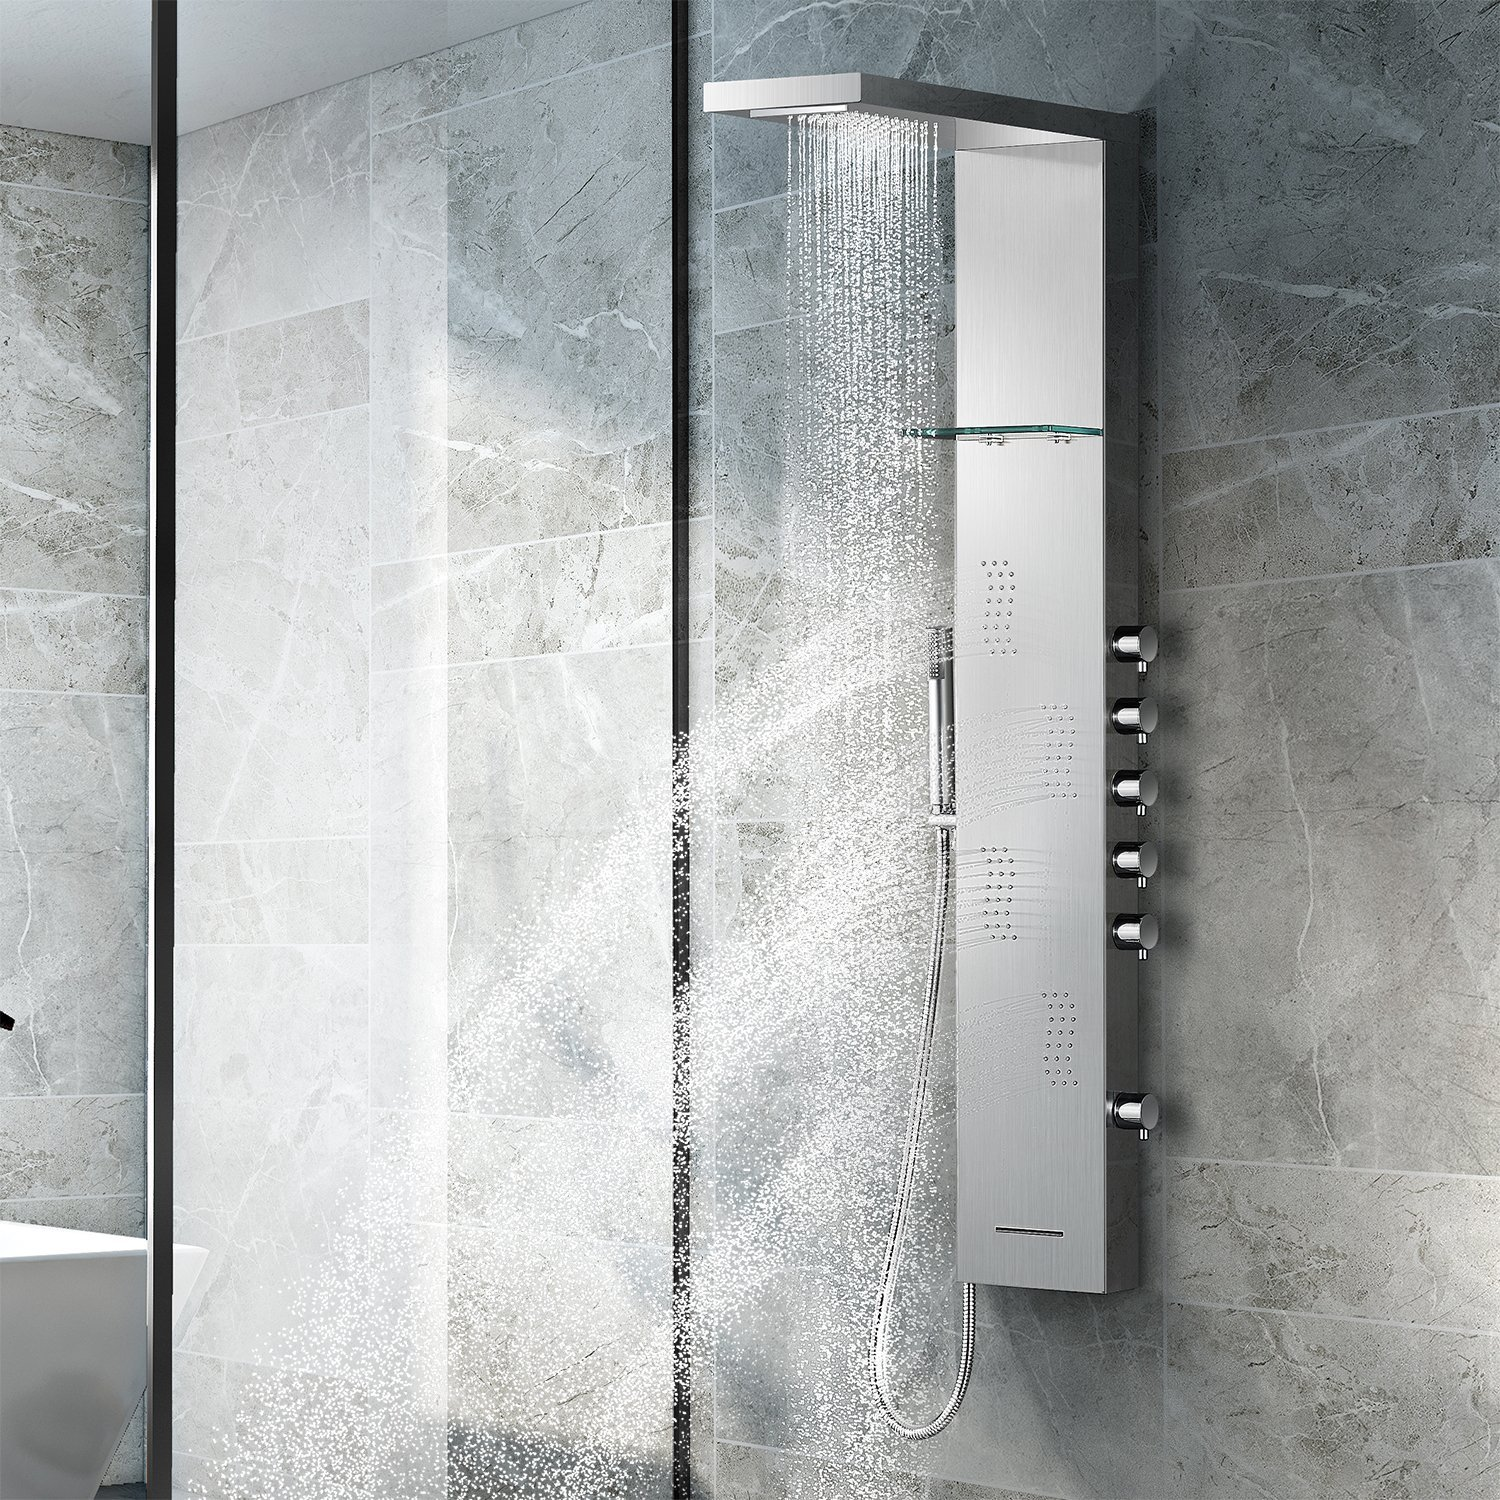 Vantory Shower Panel #304 Stainless Steel Wall Mount Multi-Function Tower Massage Systerm With Body Jets Tub Spout Rainfall Waterfall Showerhead